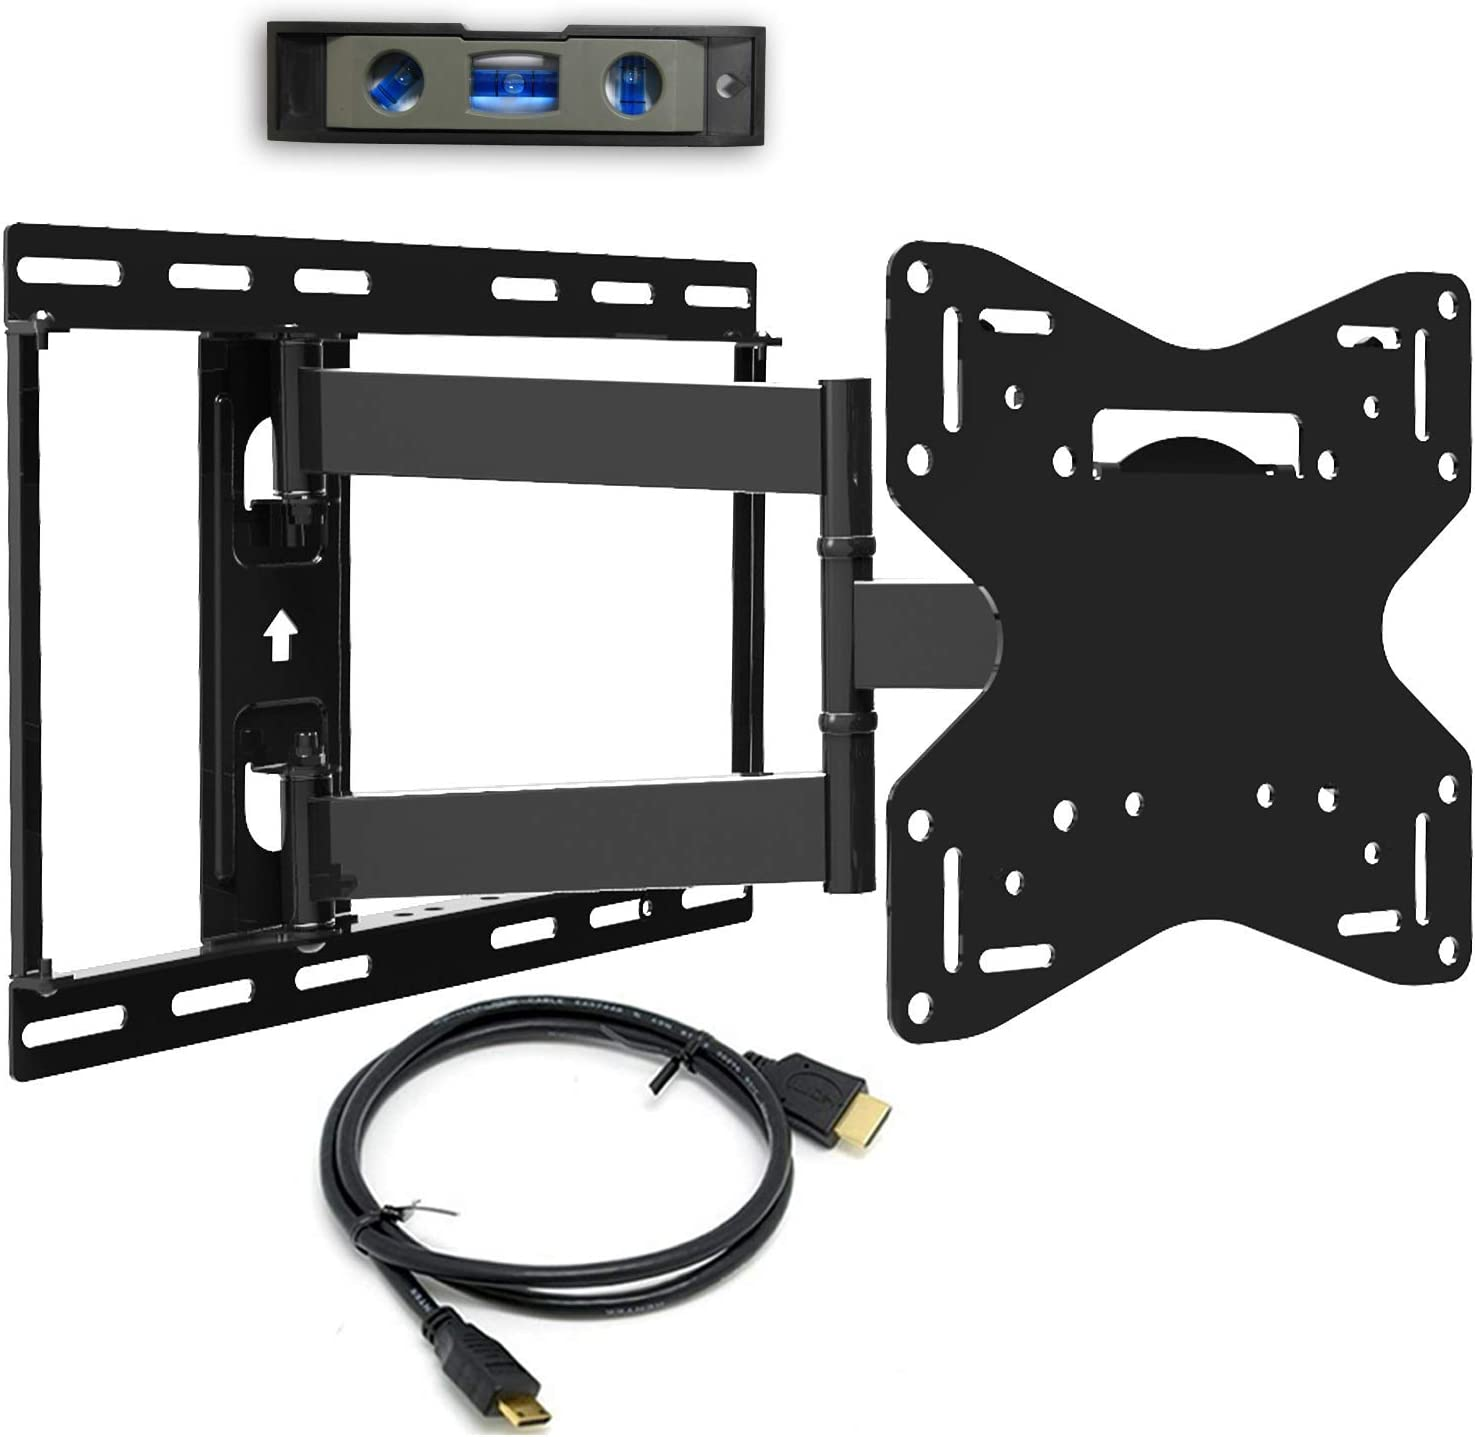 Everstone TV Wall Mount For Most 23-70 Inch LED LCD Plasma Flat Screen Up To 110 Lbs VESA 600x400mm With Full Motion Swivel Articulating Arm,Fits 8-16 Wall Studs,HDMI Cable